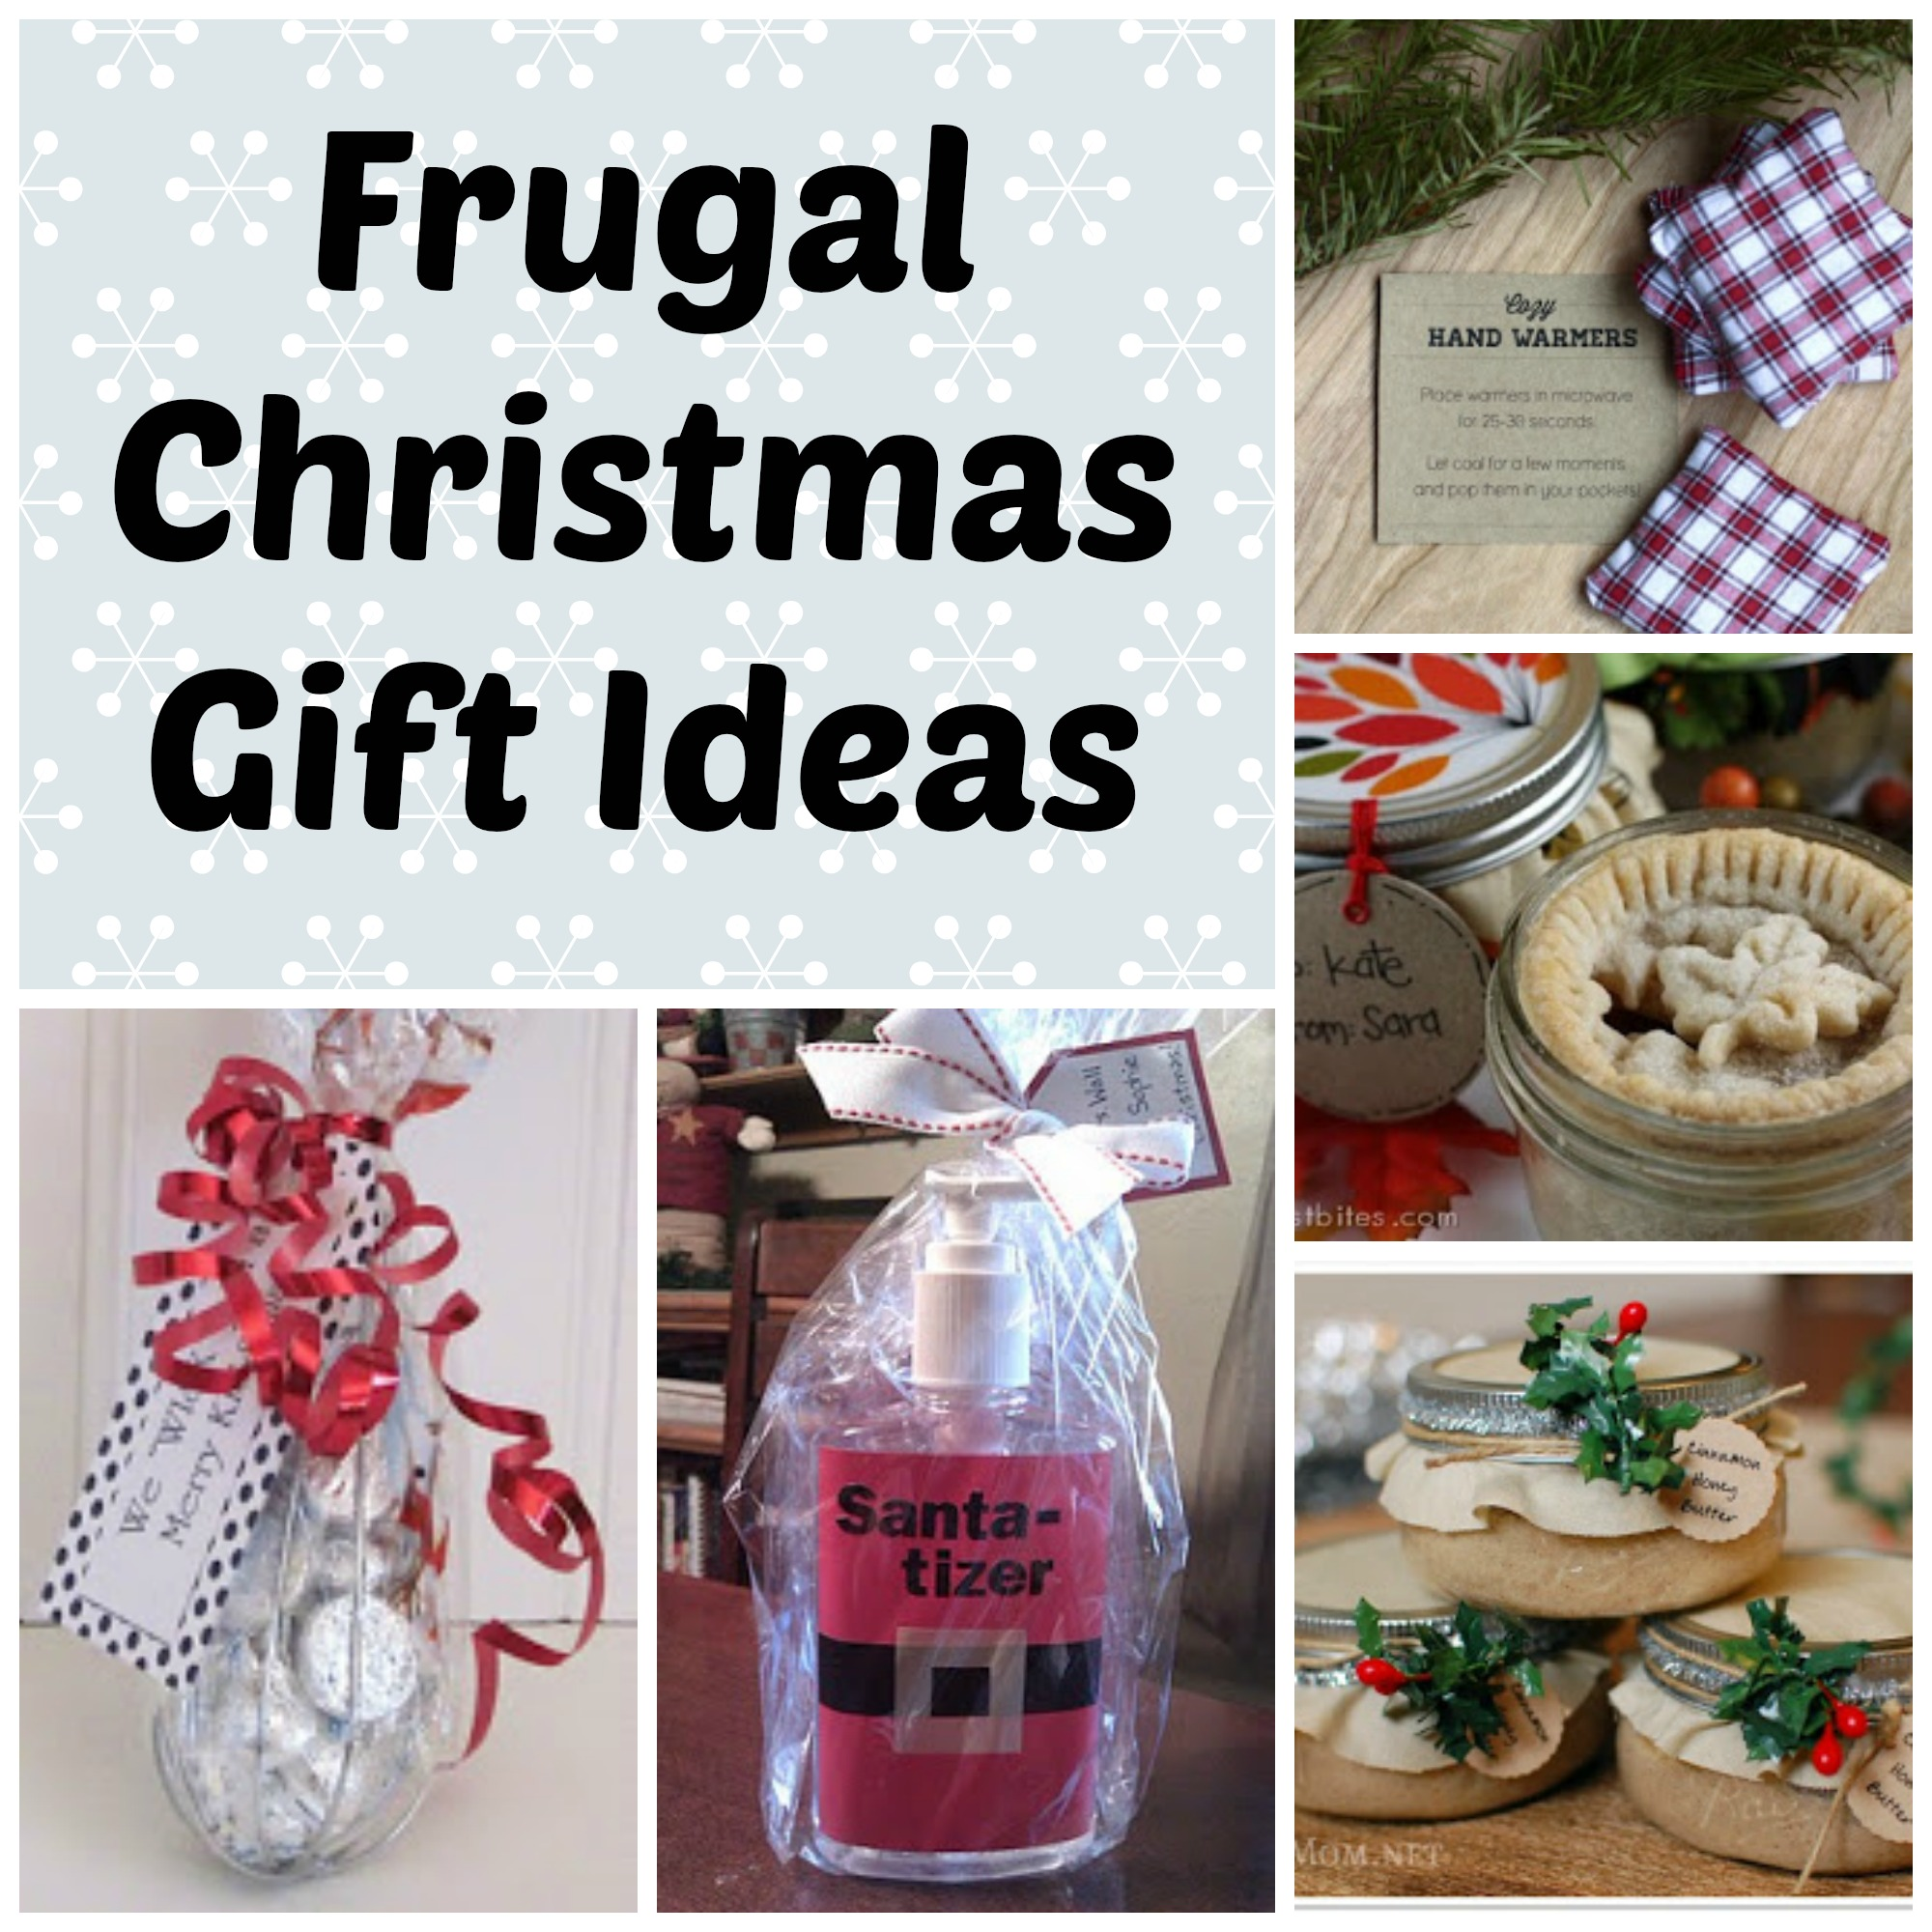 Christmas thoughtful gift ideas